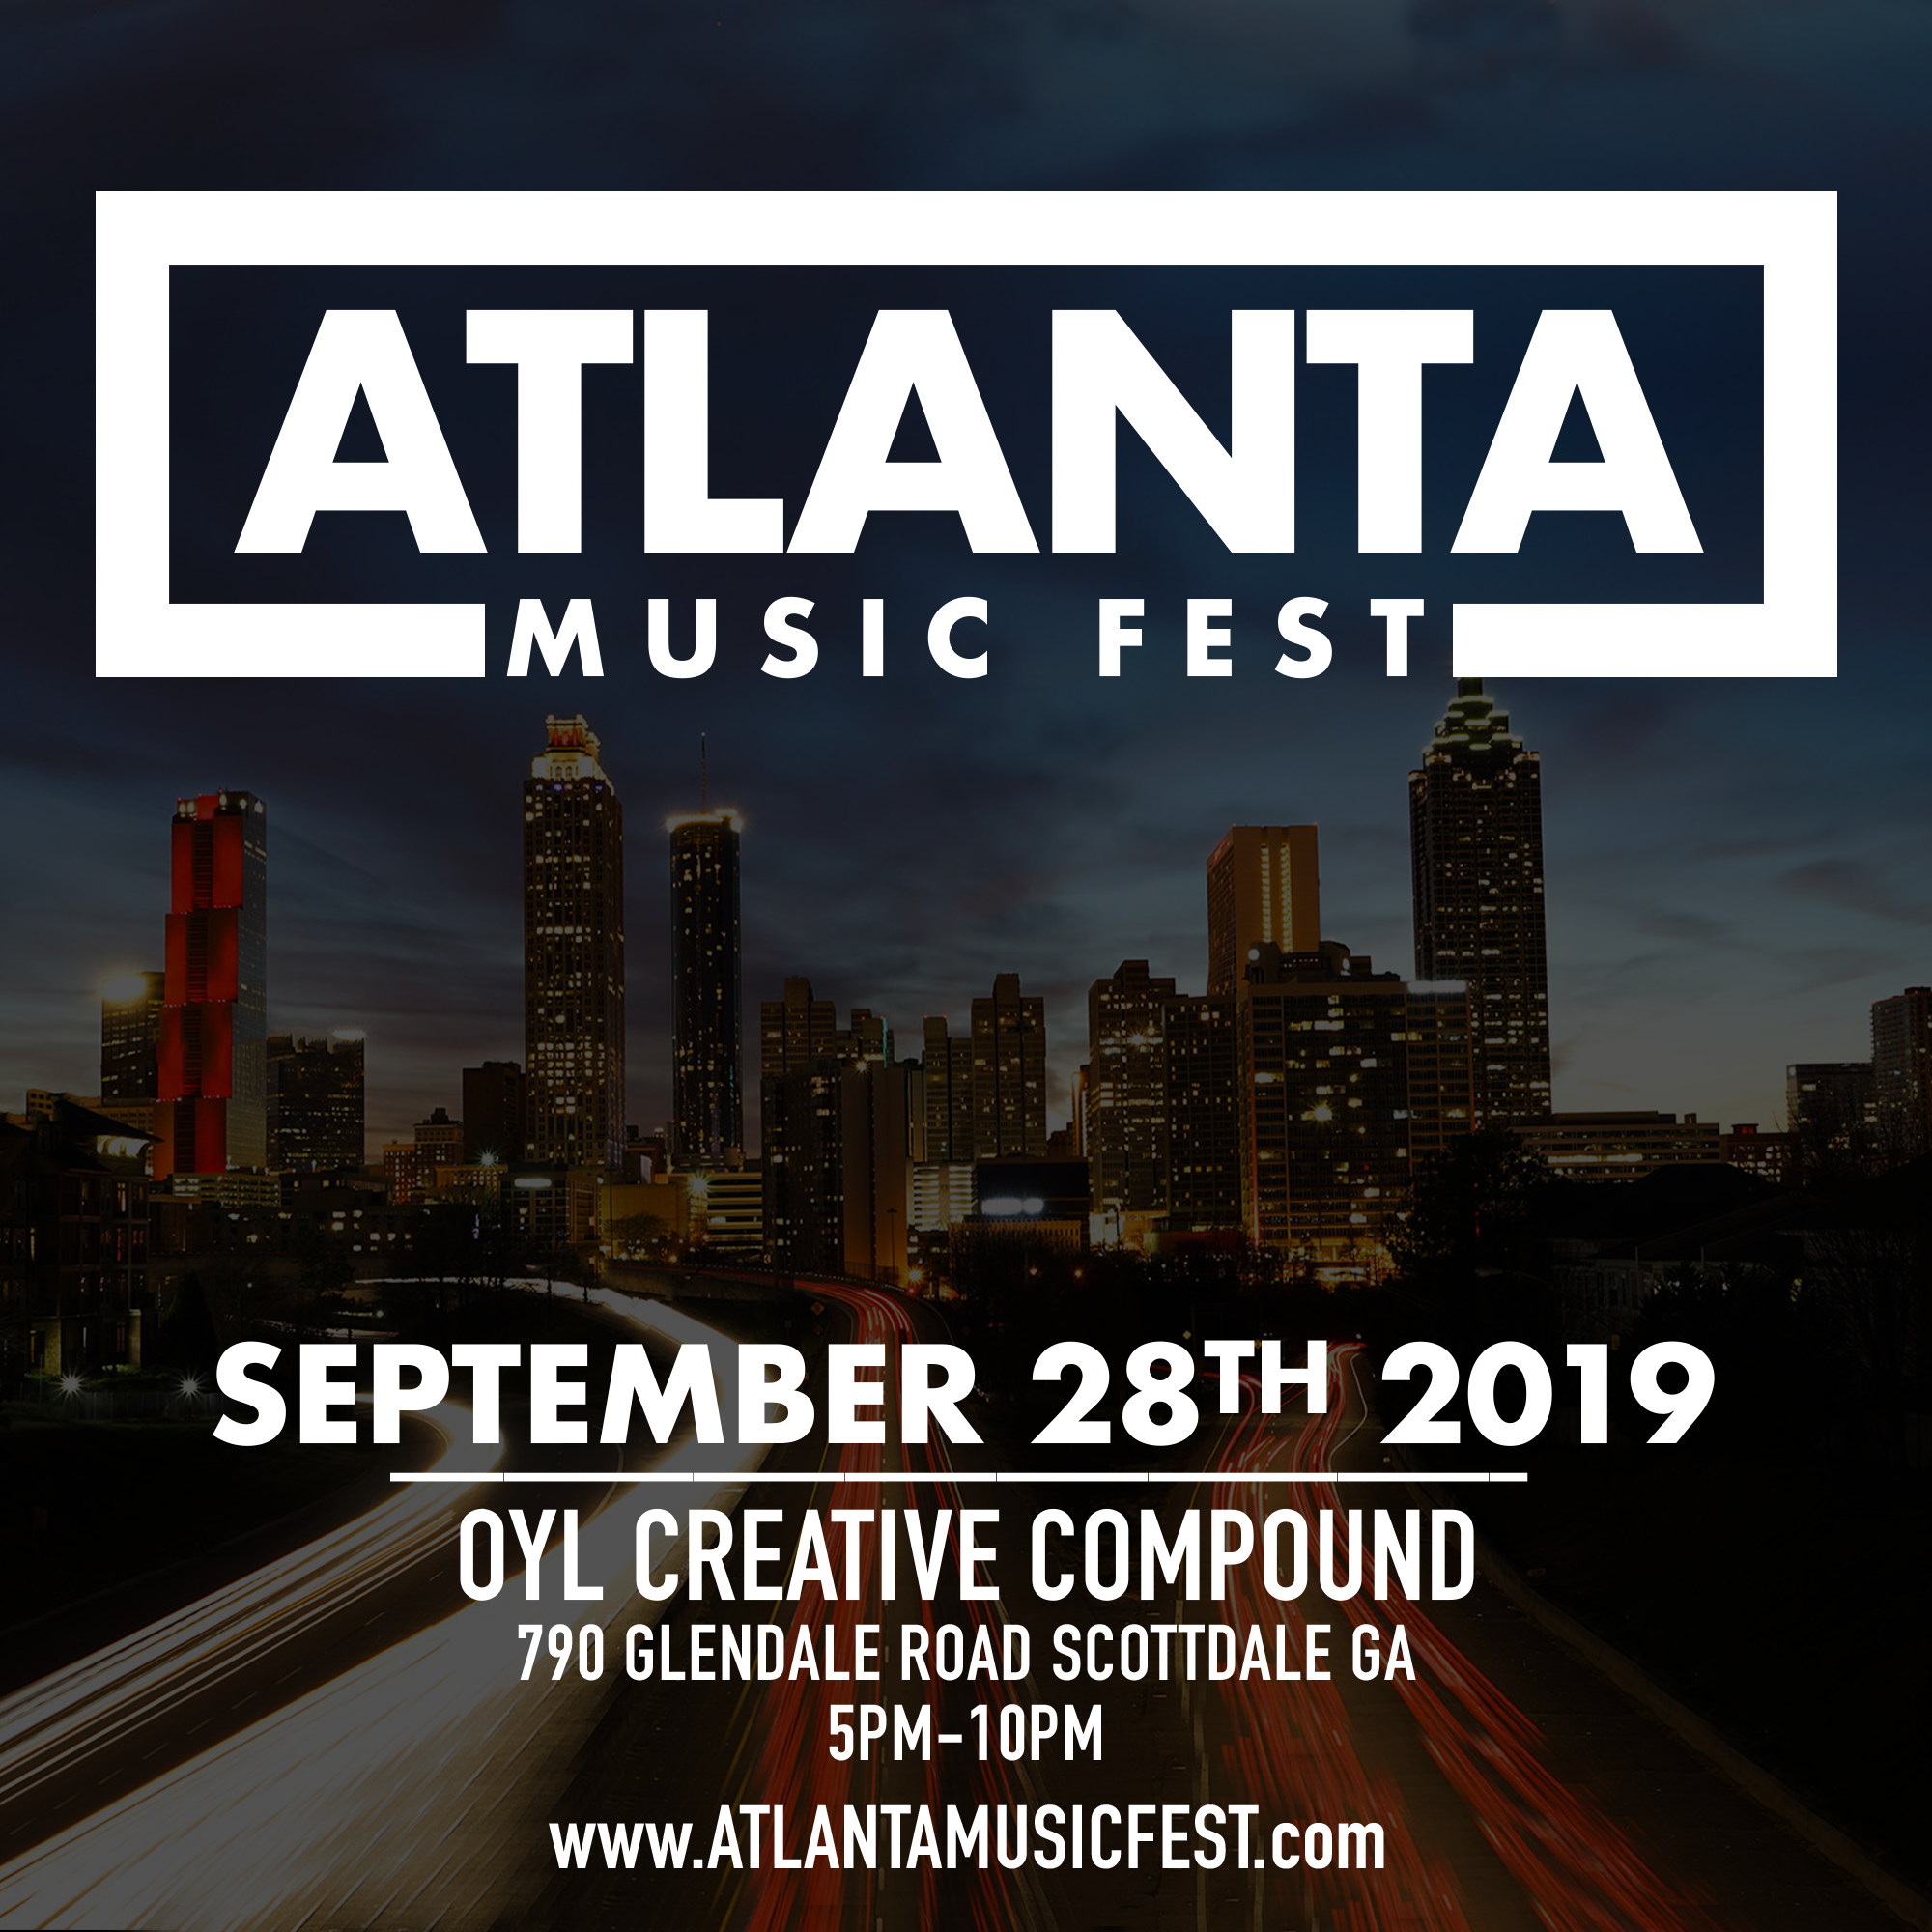 Atlanta Music Fest 00 f.png